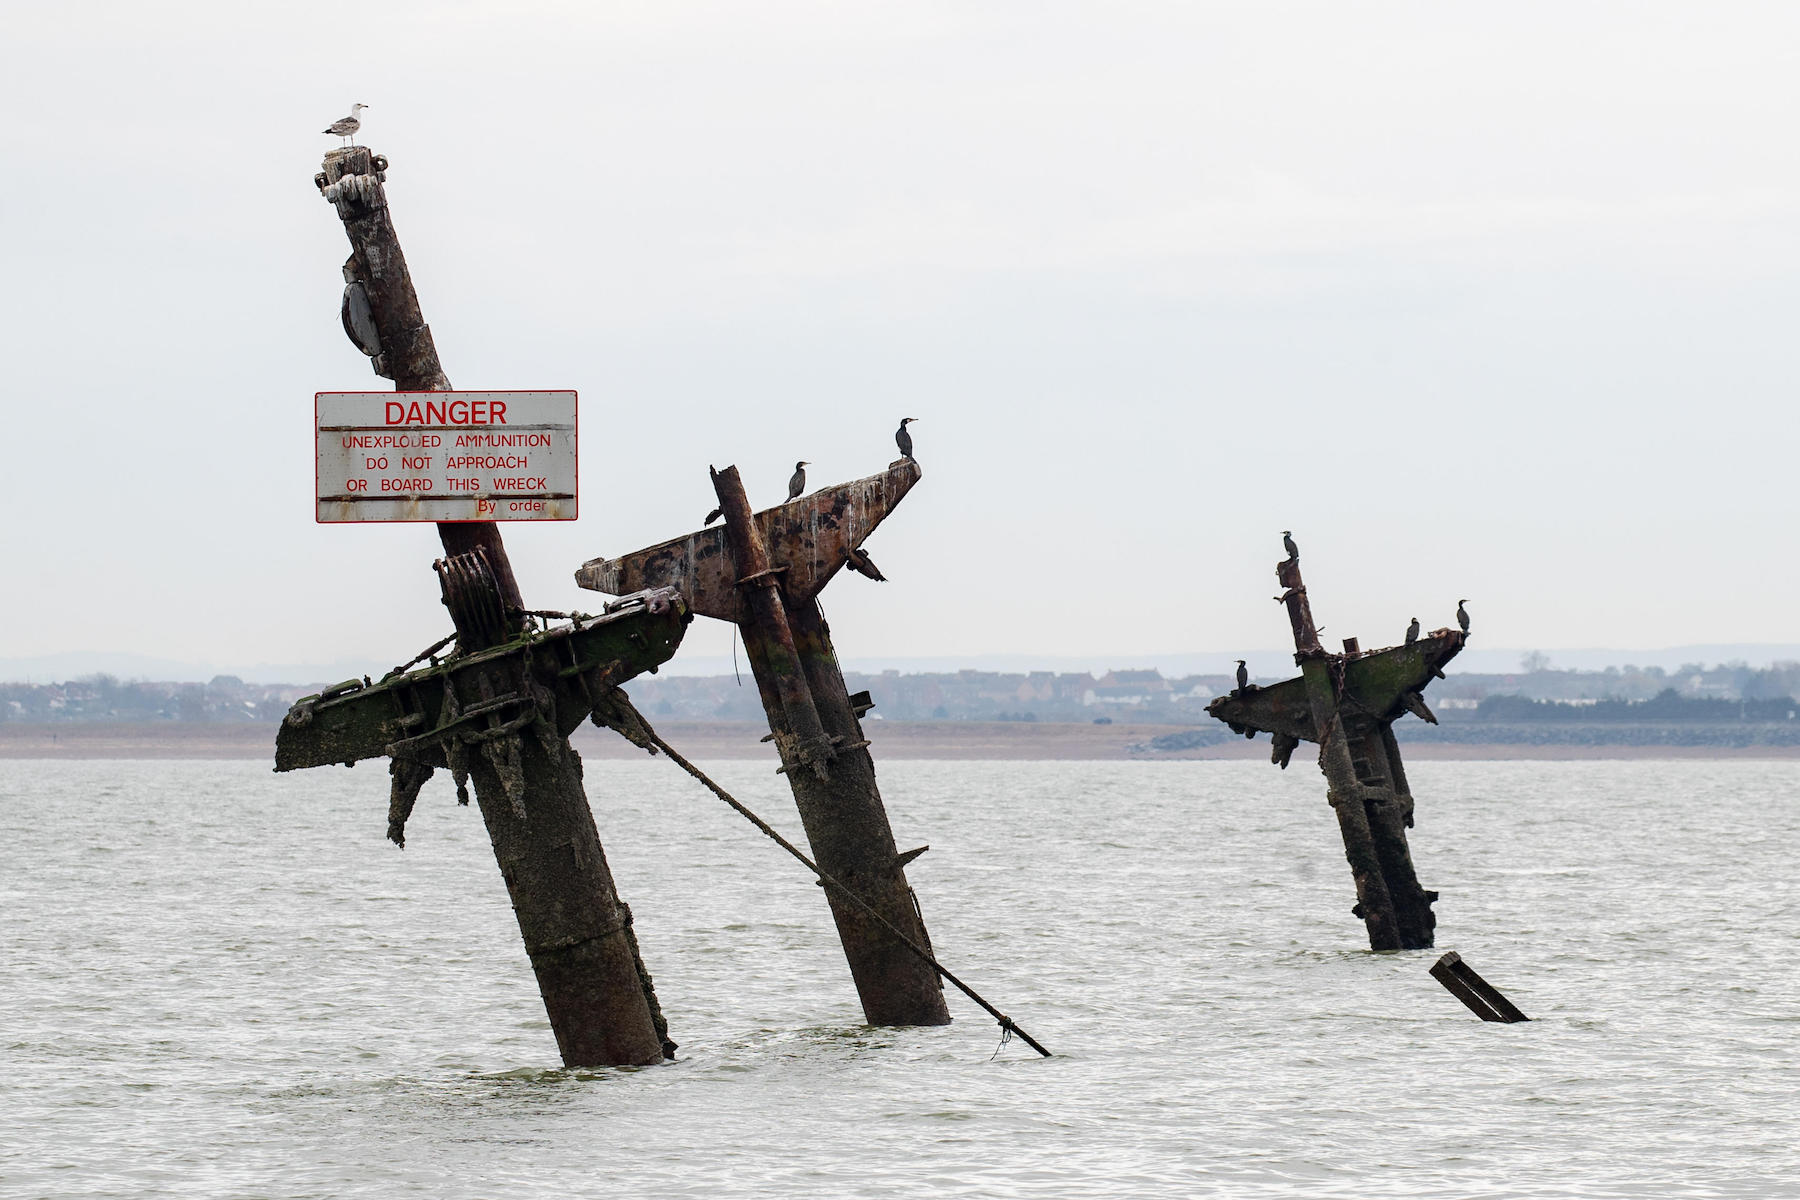 P630TT Visible masts of the wreck of SS Richard Montgomery, an American Liberty ship built during World War II,1,400 tonnes of explosives remain on board